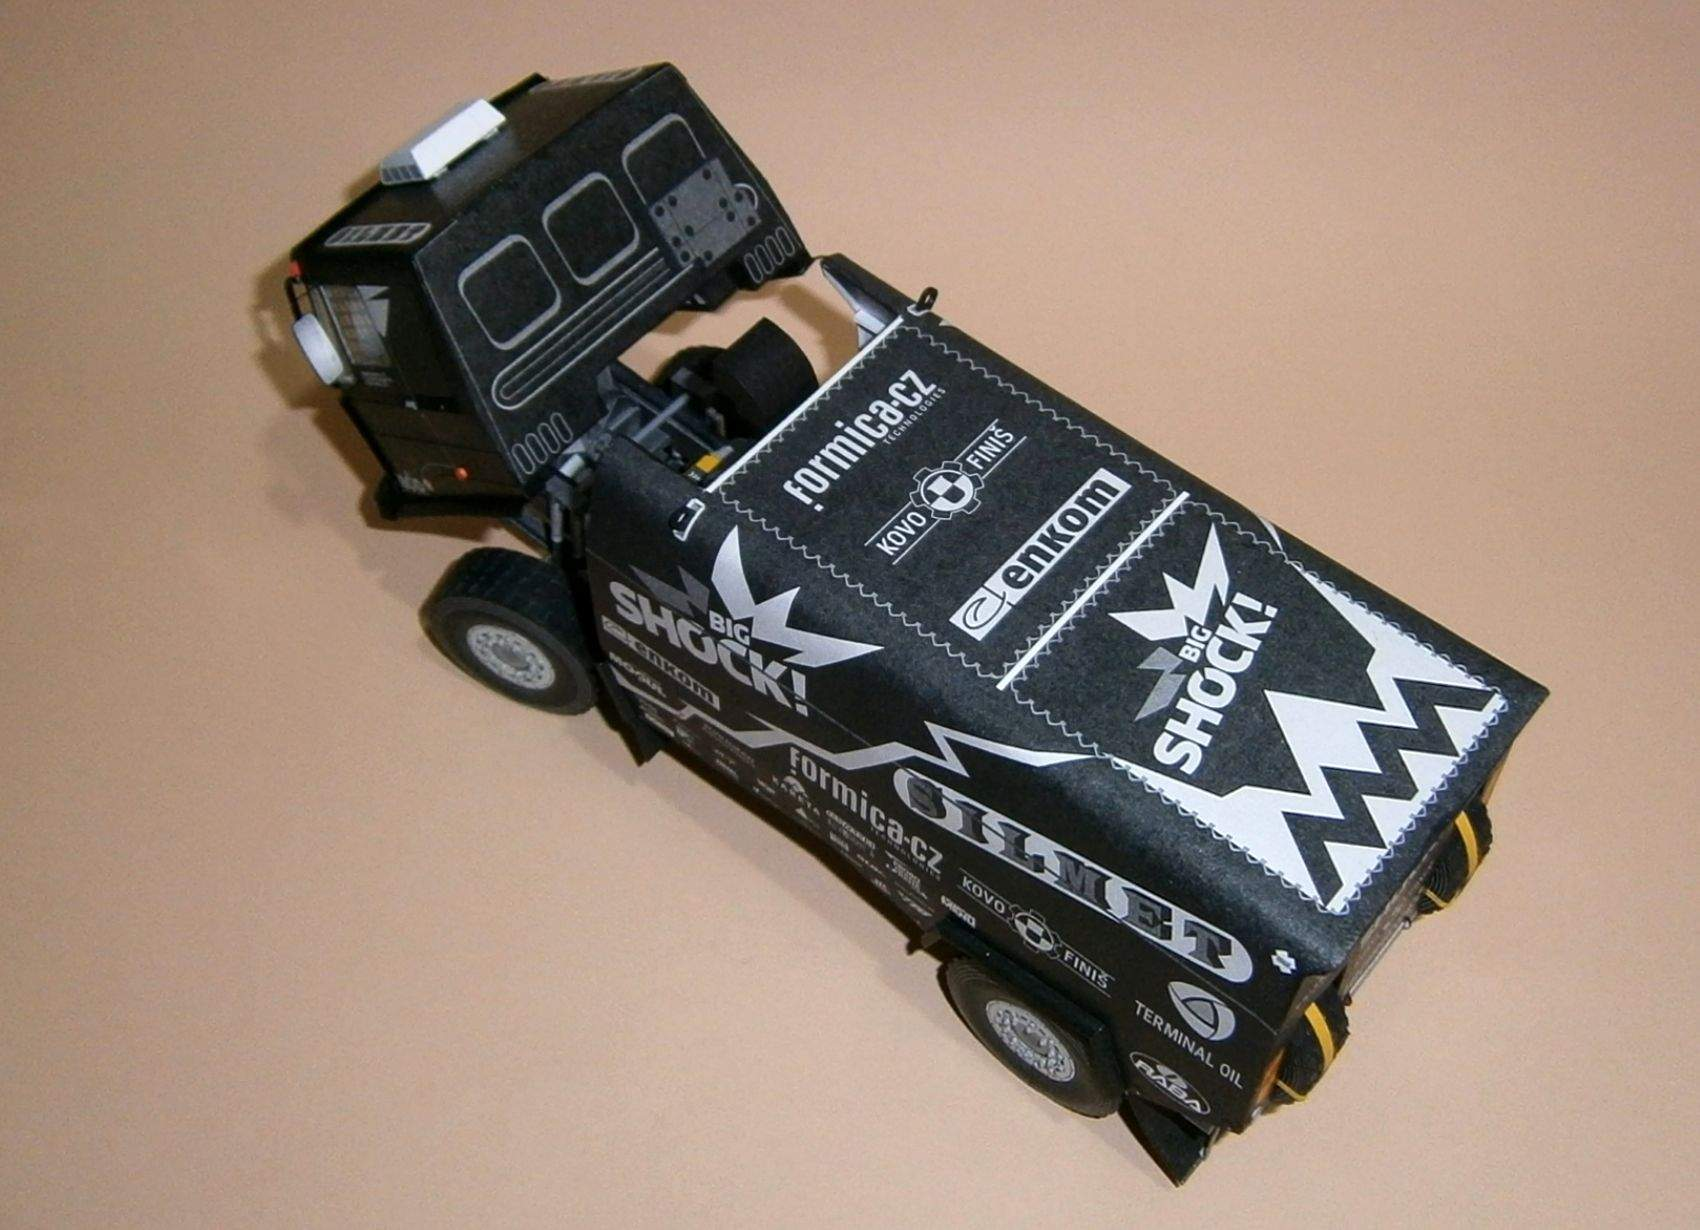 LIAZ Dakar 2017 Black version